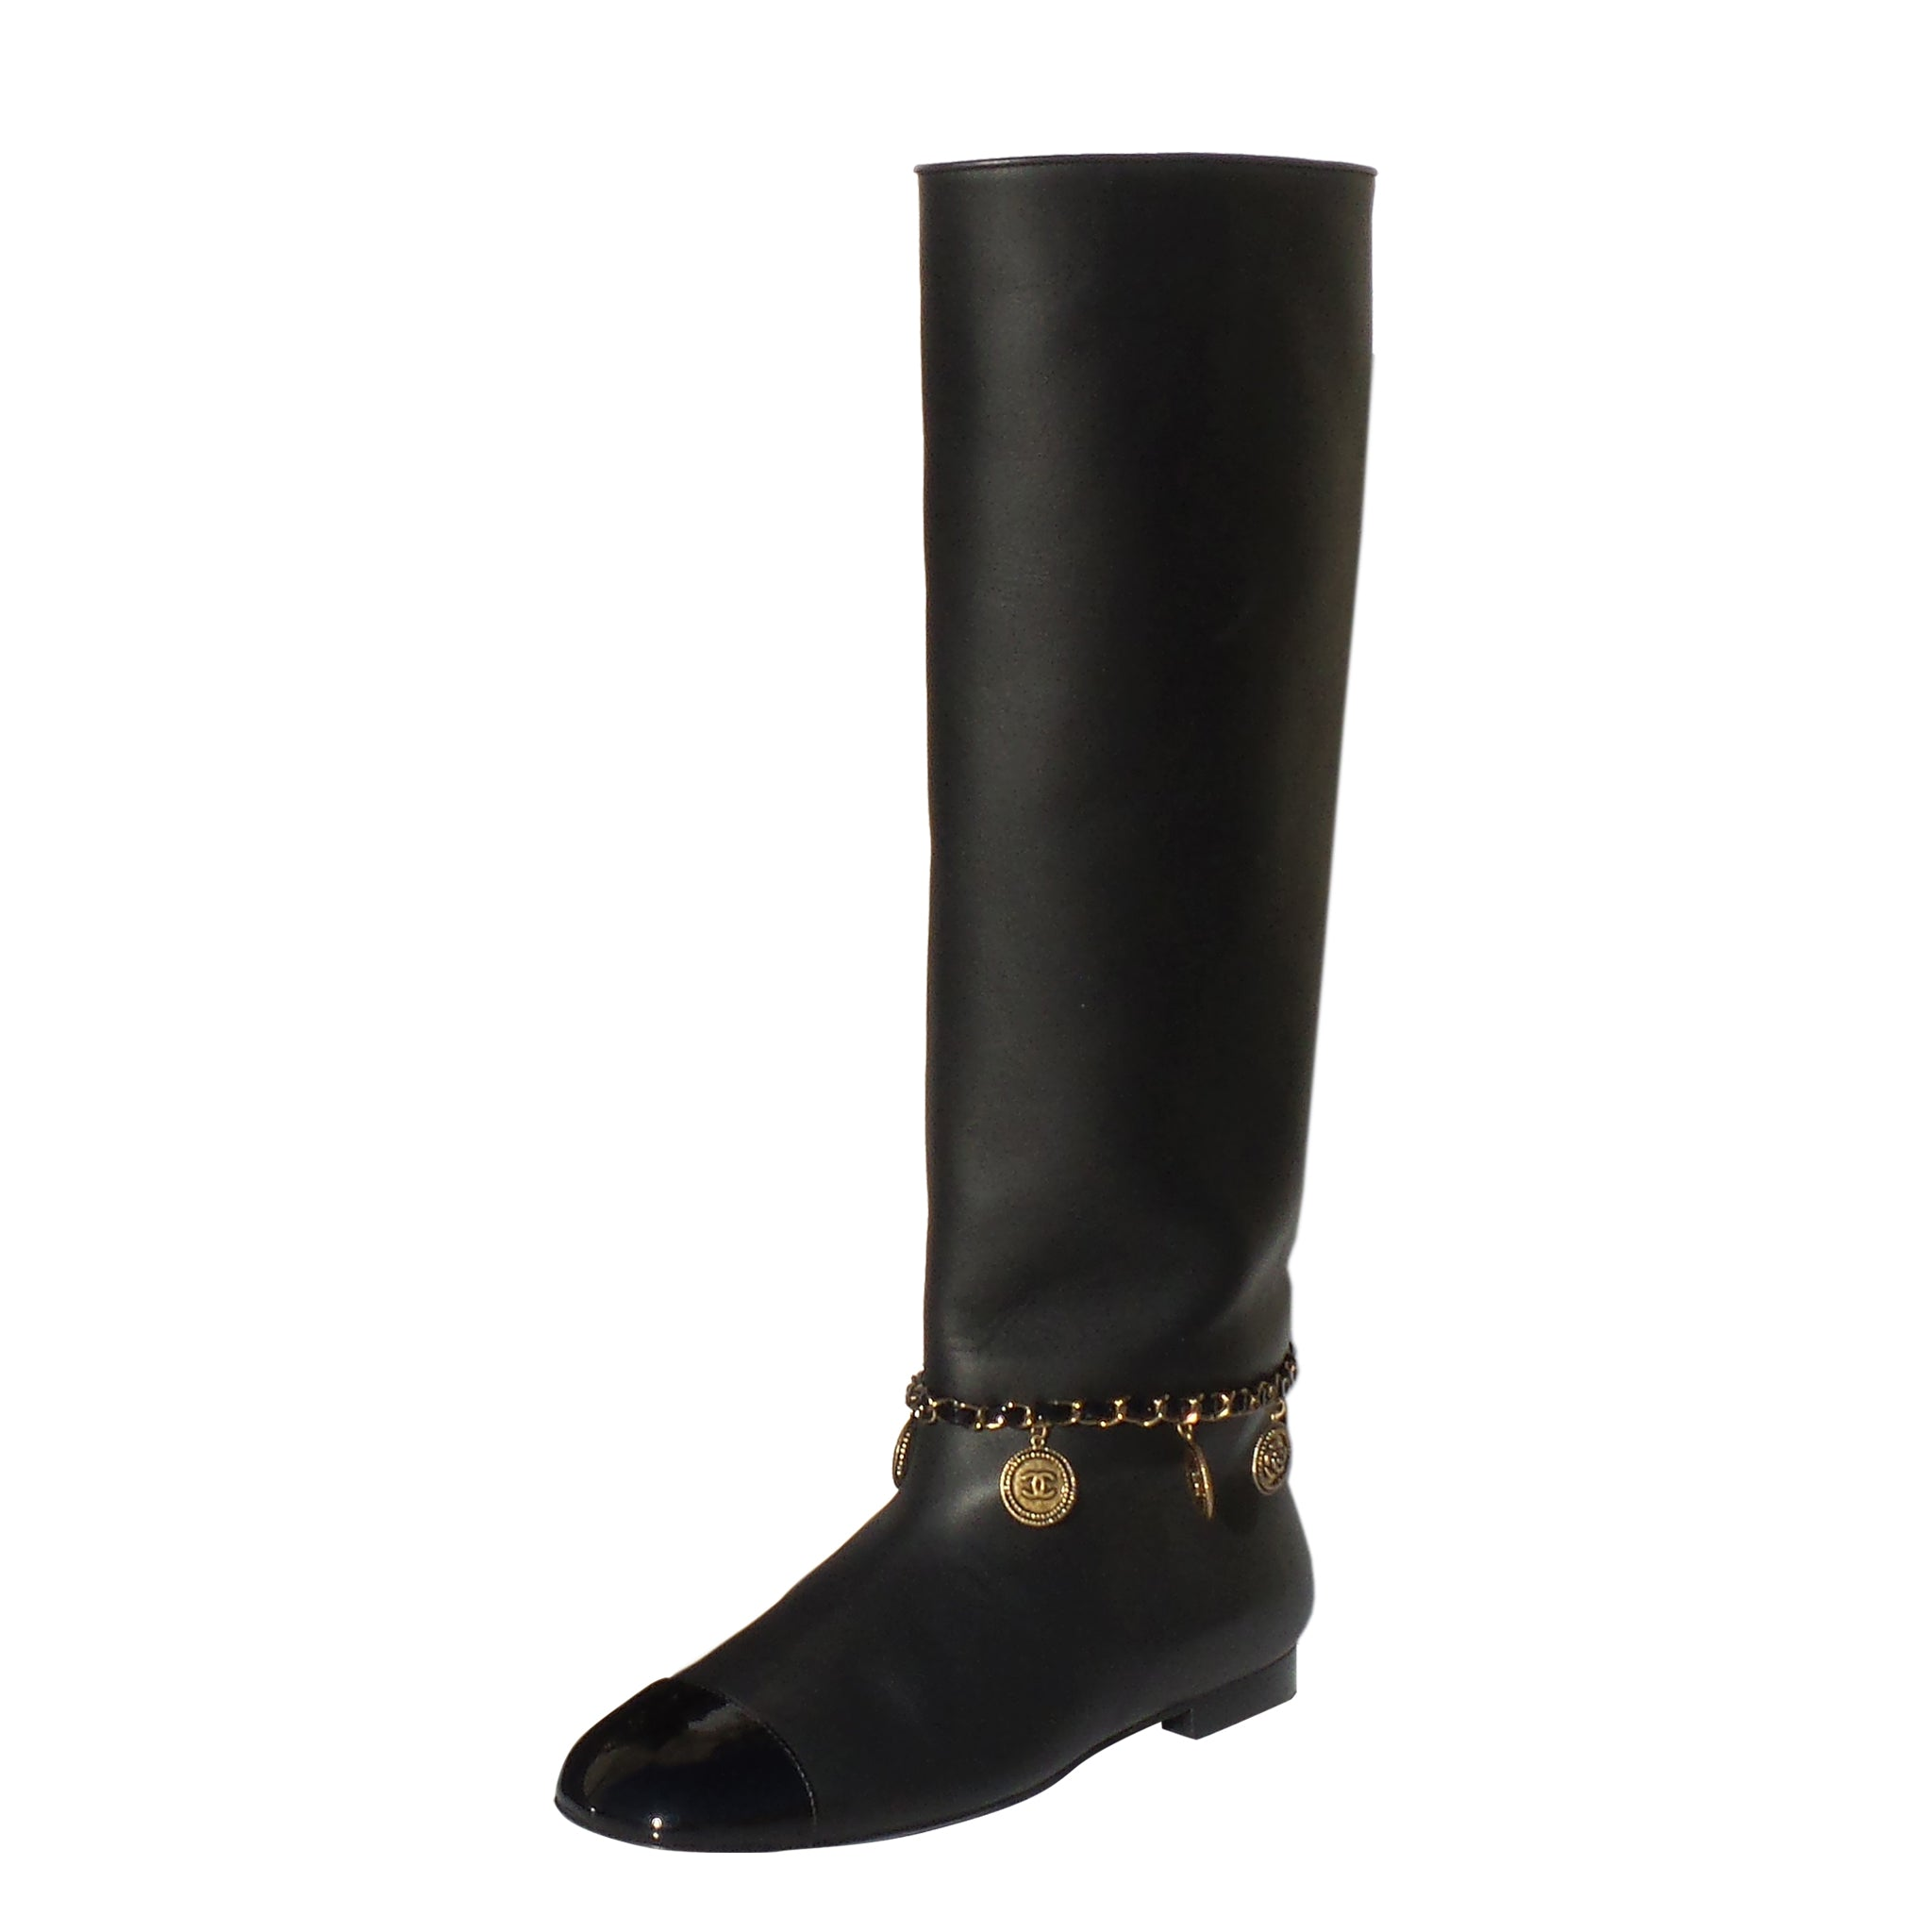 c10780027659 CHANEL 17A Black Leather Gold Charm Chain Boots 37.5 – Encore Resale.com